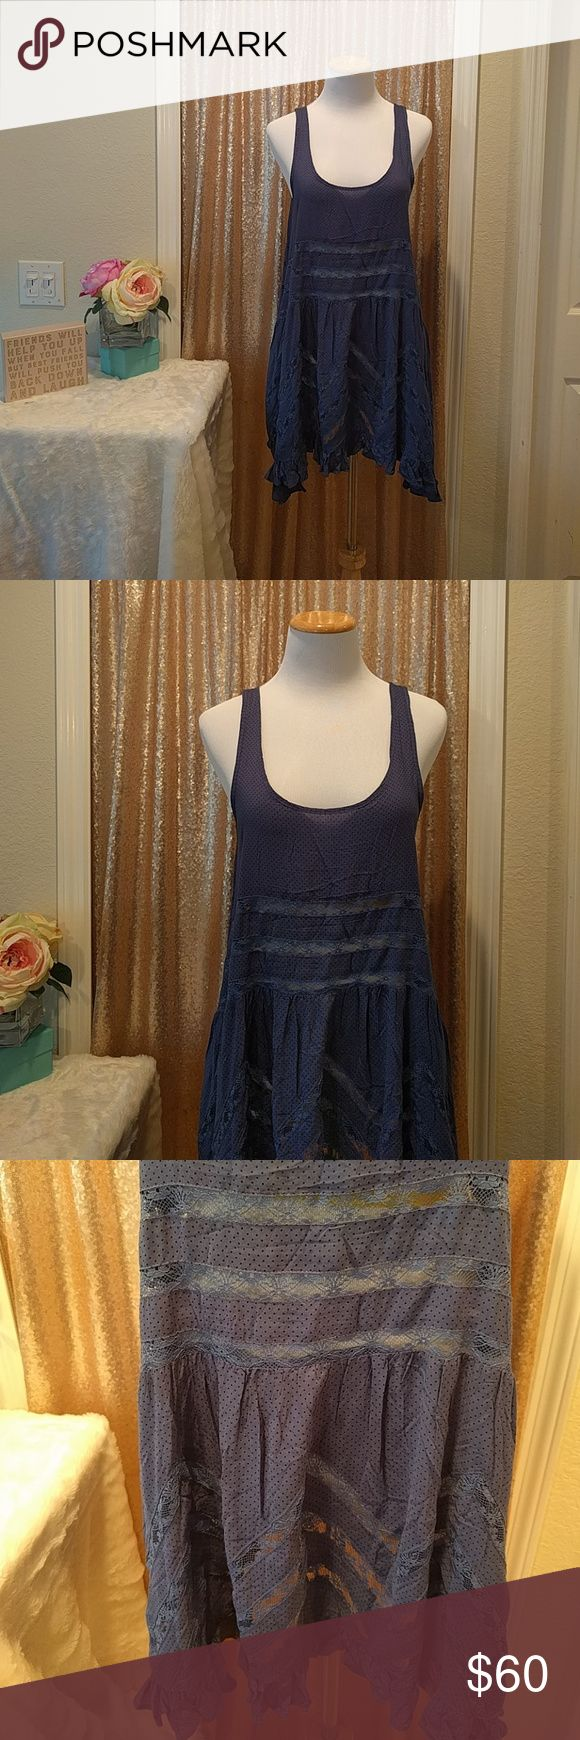 """Free People Blue and Black Voile and Lace Trapeze Item Description:  Free People Blue and Black Voile and Lace Trapeze Slip